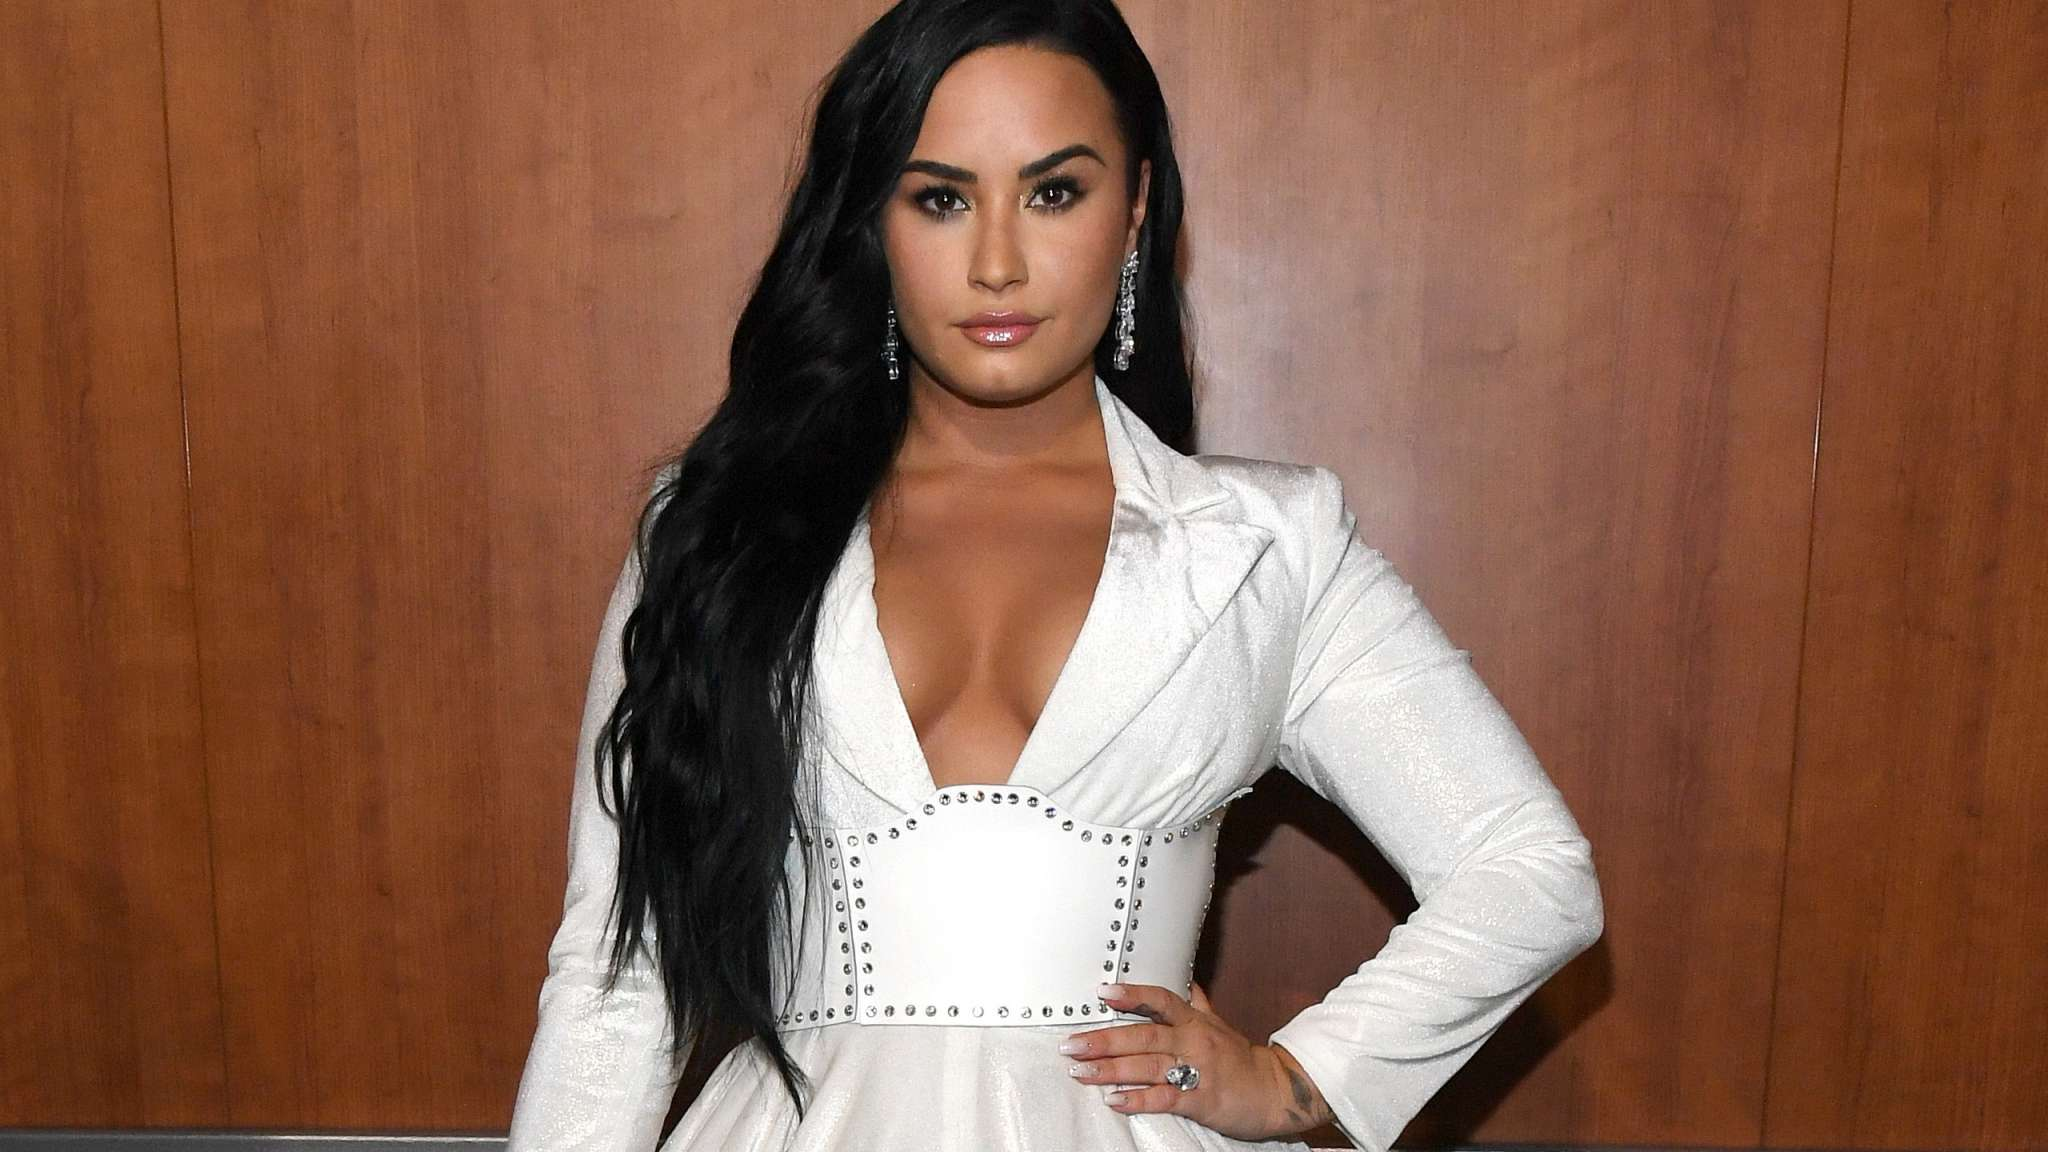 Demi Lovato Reveals She Almost 'Gave Up' And Relapsed Upon Reading Article That Called Her 'Morbidly Obese' After Rehab